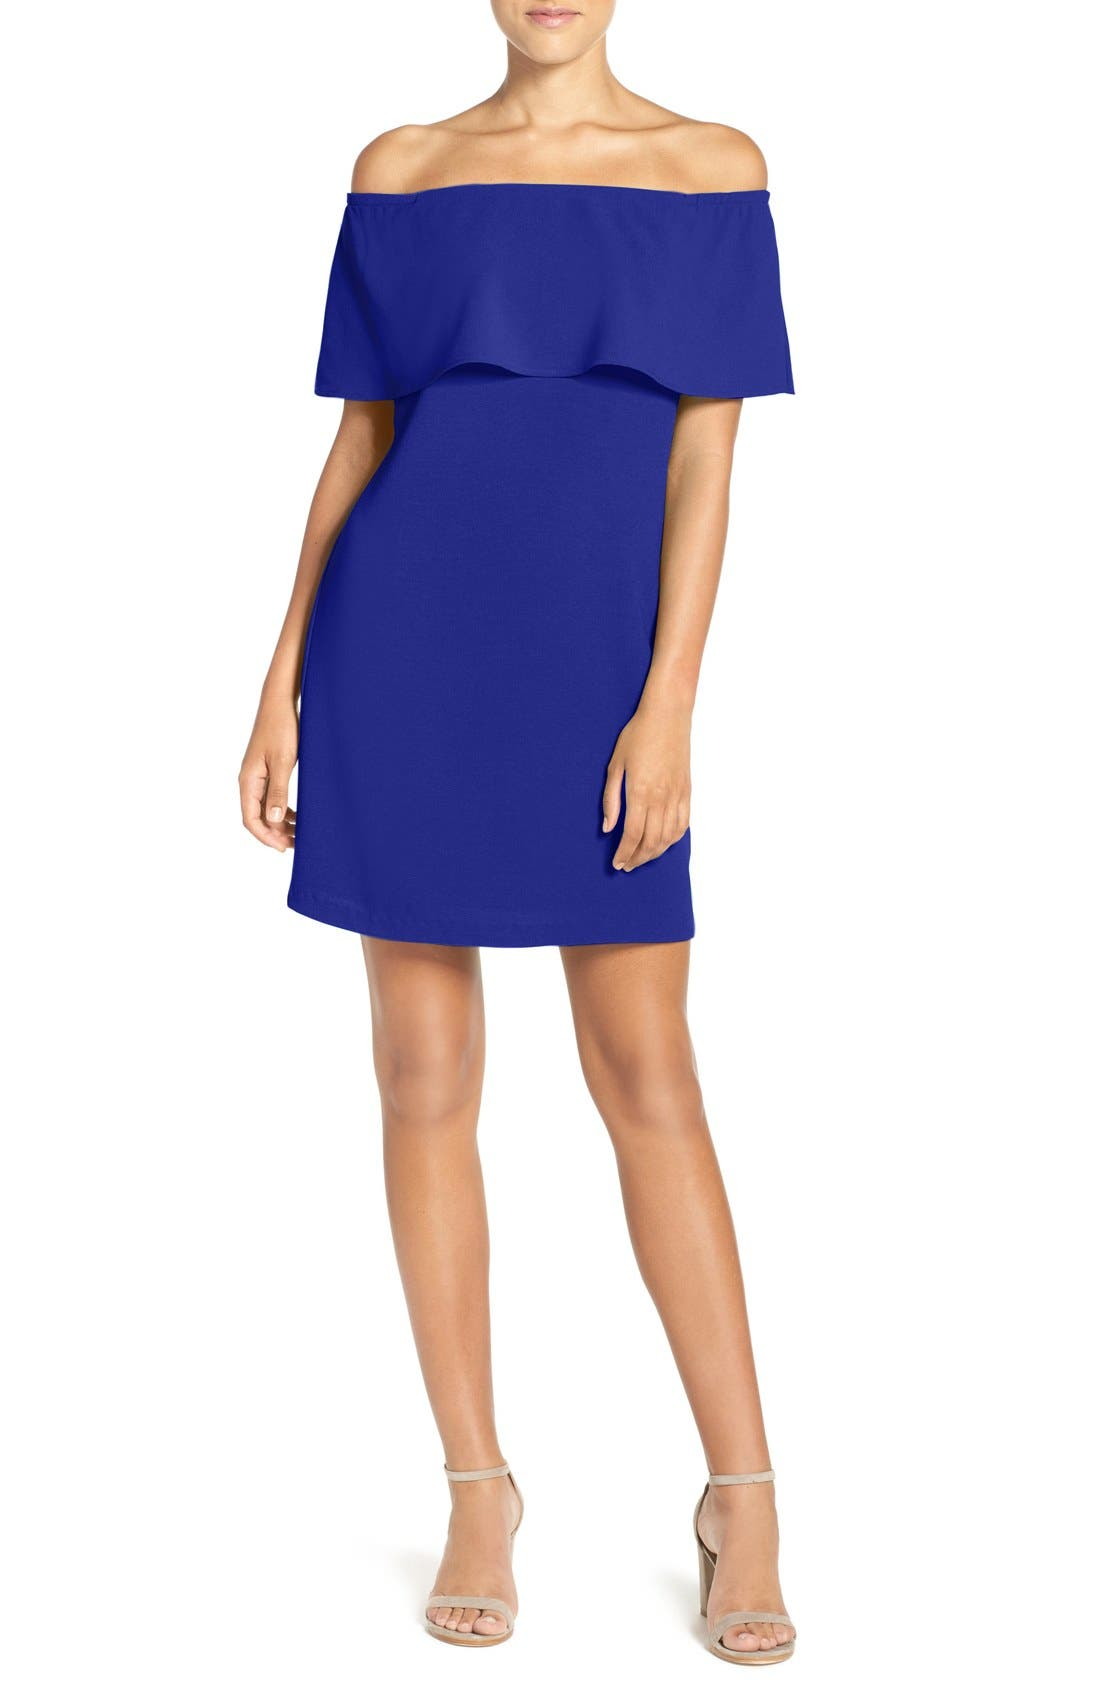 Women's Petite Cocktail & Party Dresses | Nordstrom